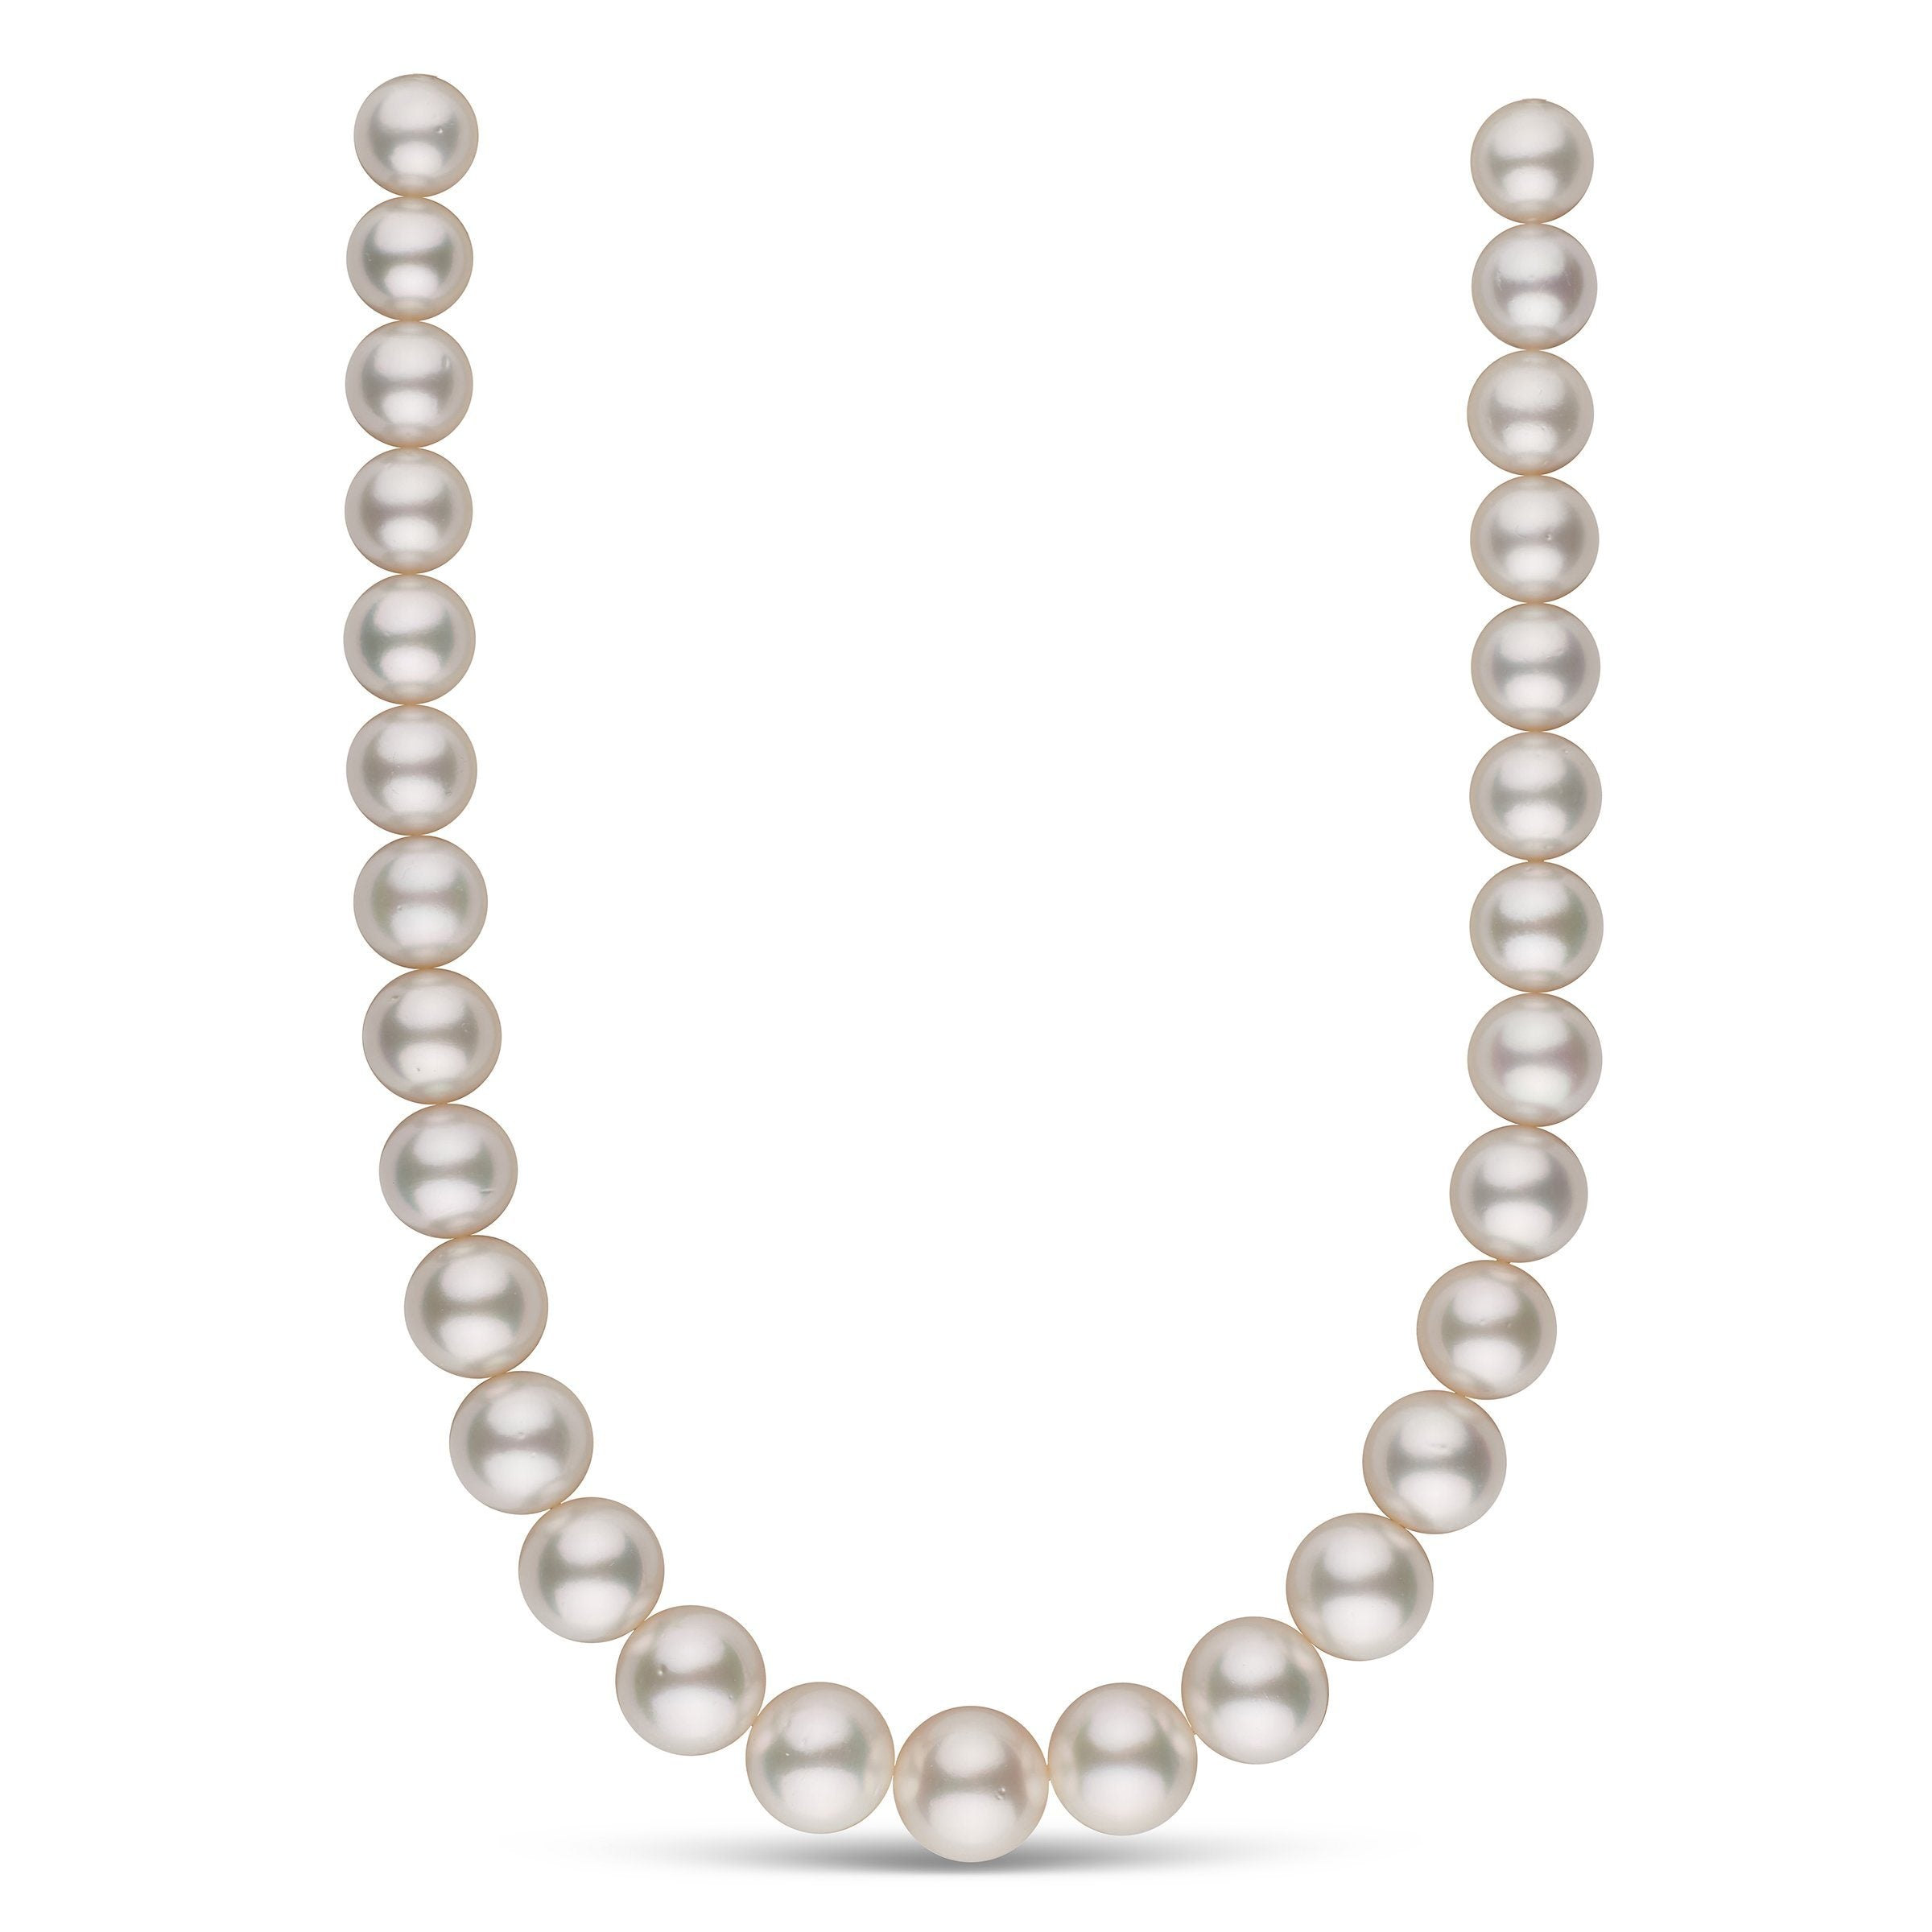 13.0-16.2 mm AA+ White South Sea Round Pearl Necklace